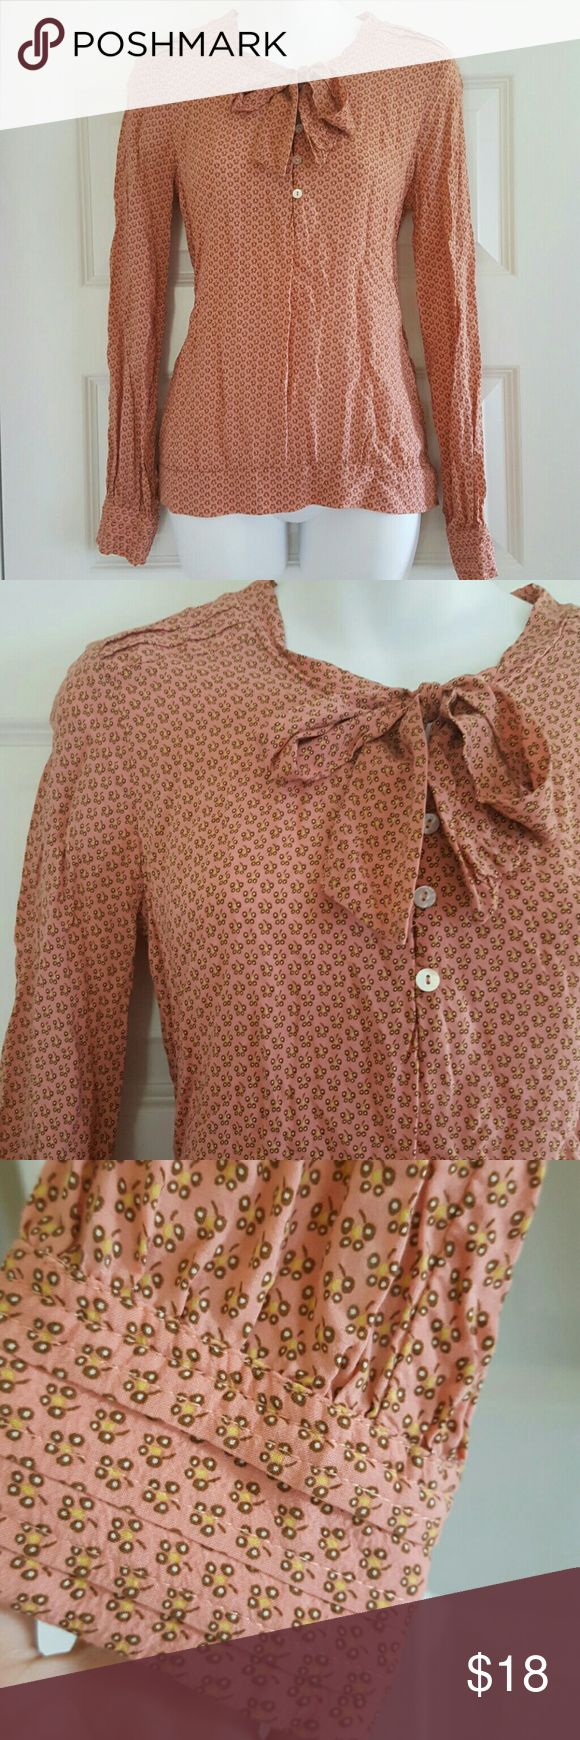 Grain de Malice Blouse - French Boutique Super, super cute blouse from the French boutique Grain de Malice.  Ties in the front.  Back of the bottom part of the shirt is made with stretchy material.  French size 38, US women's medium/size 8. Grain de Malice Tops Blouses